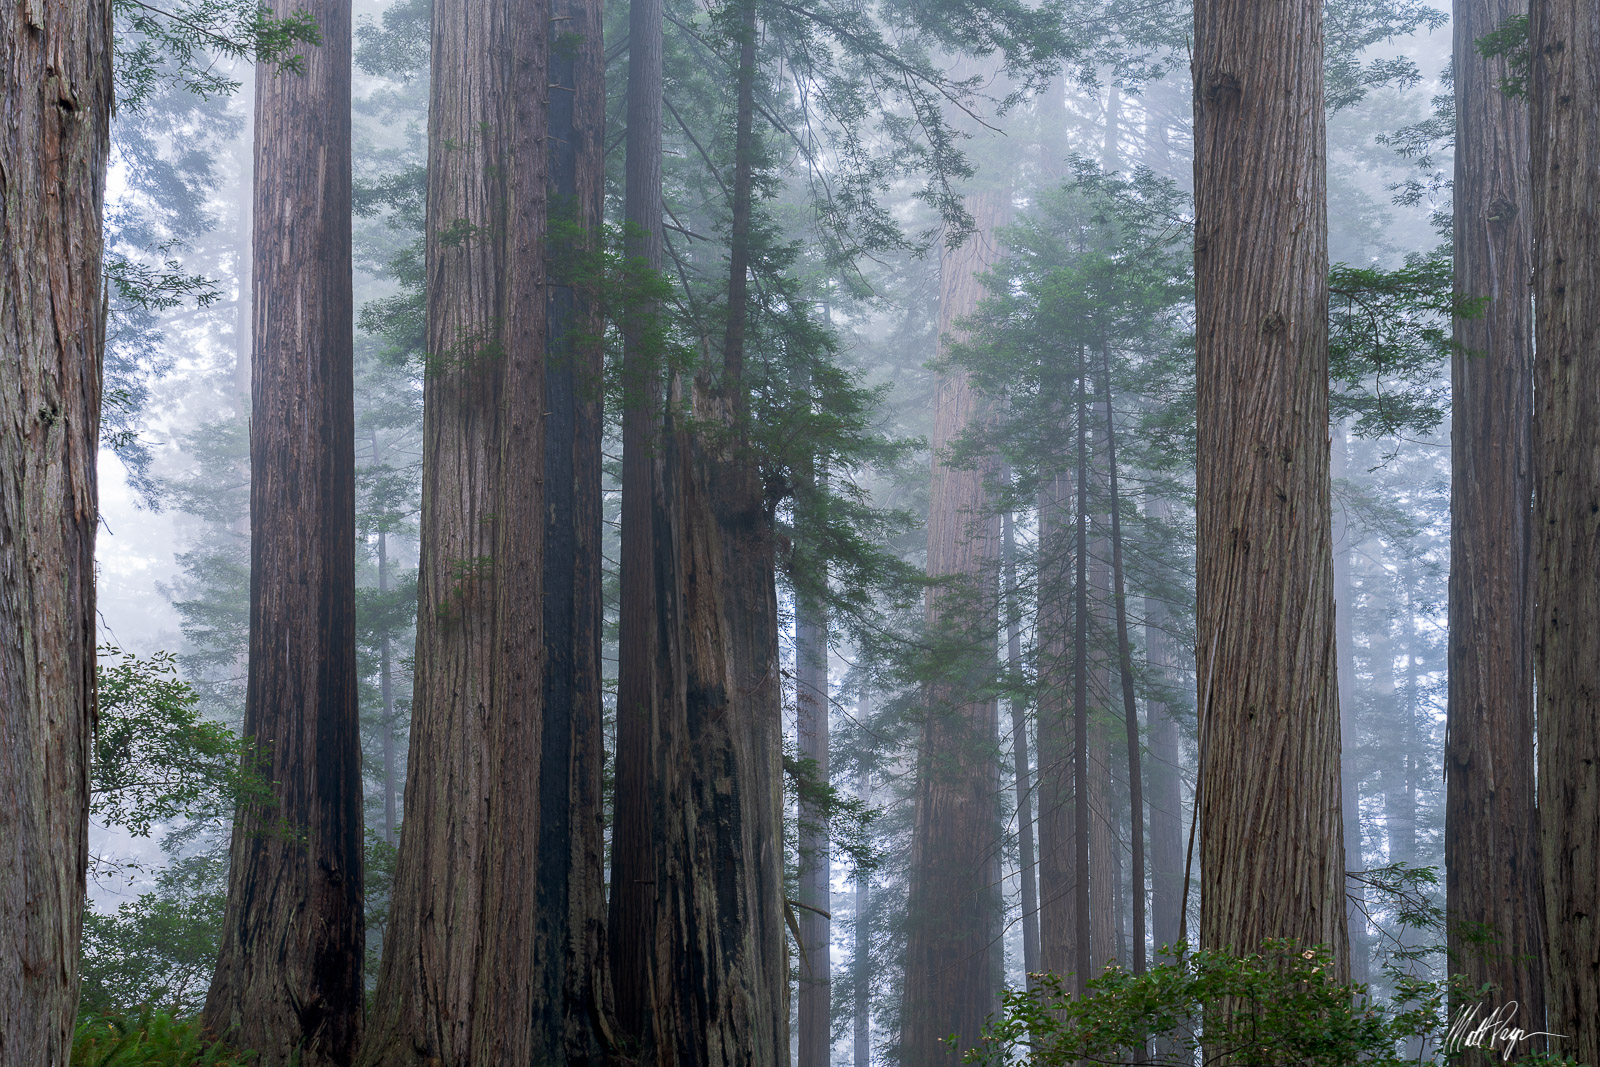 Light fog found early in the morning creates magical conditions in the Redwoods forest of California. As light filters into the...